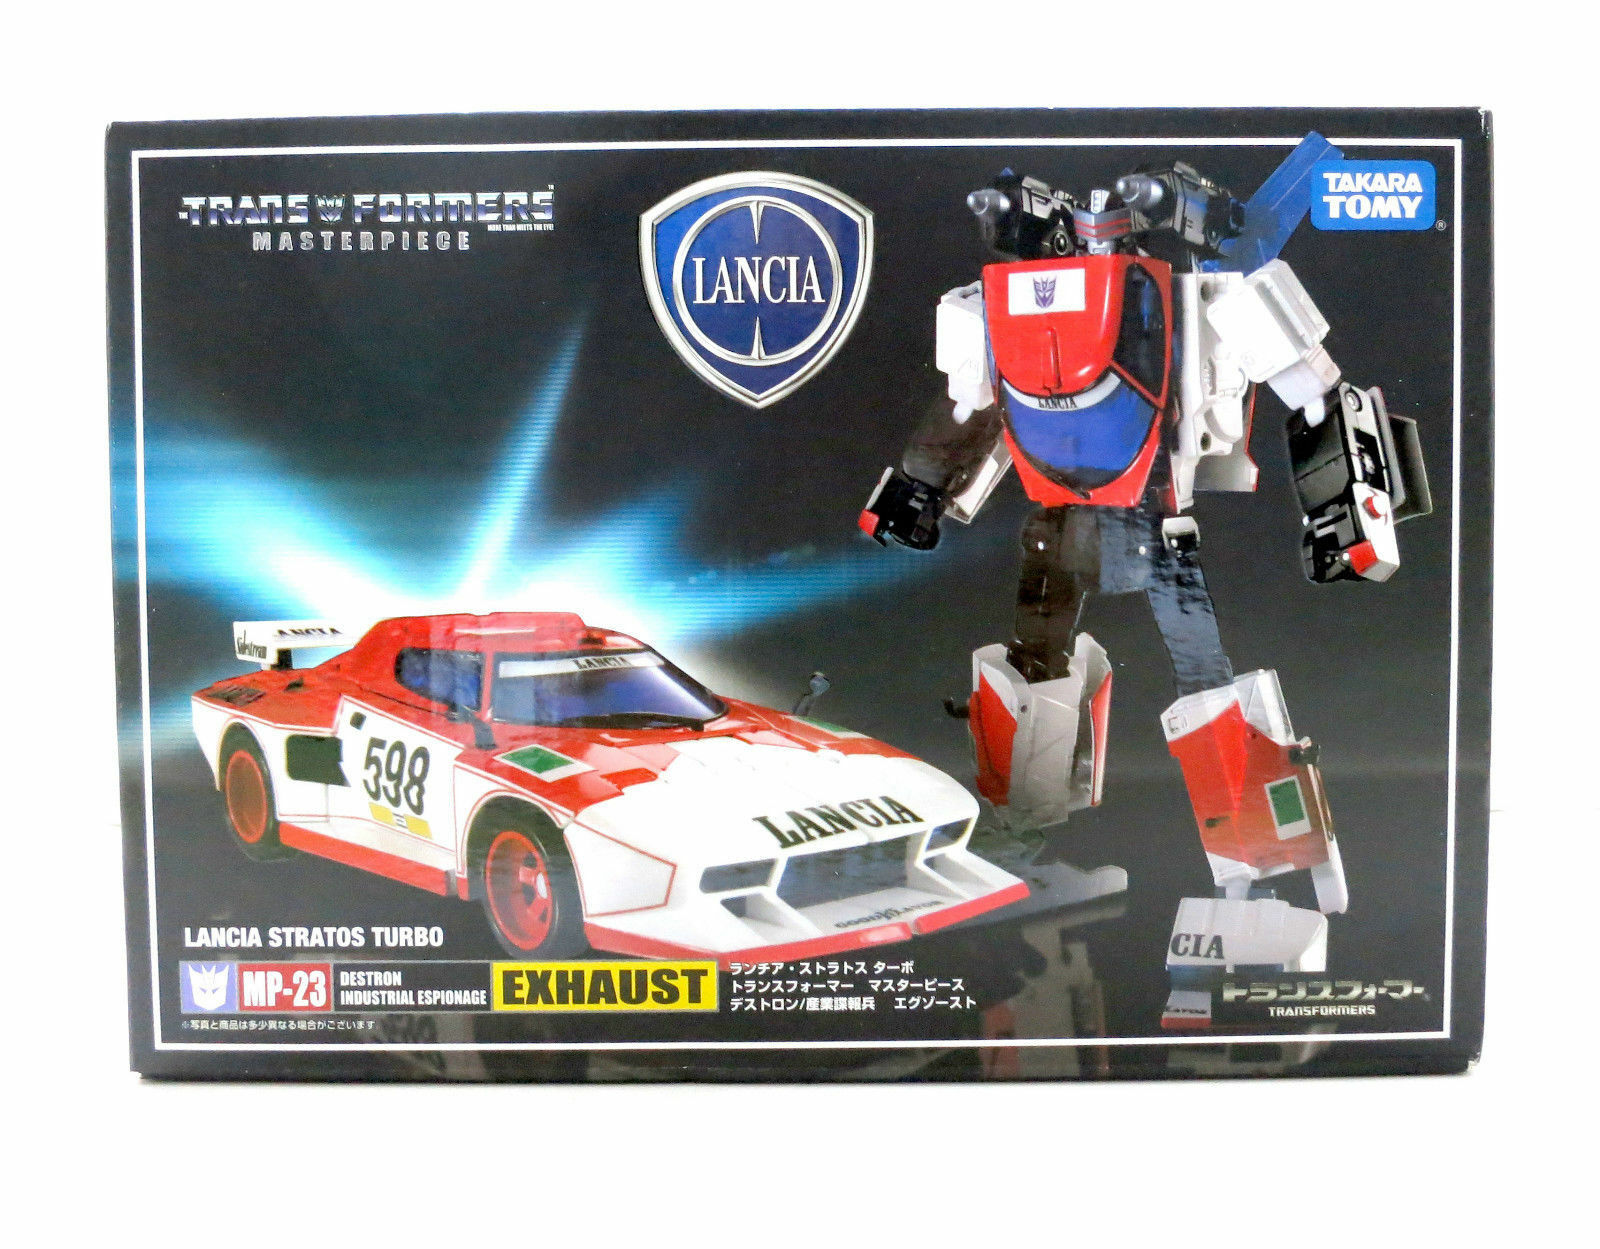 =] TAKARA  MP23 Exhaust Transformers Masterpiece [=